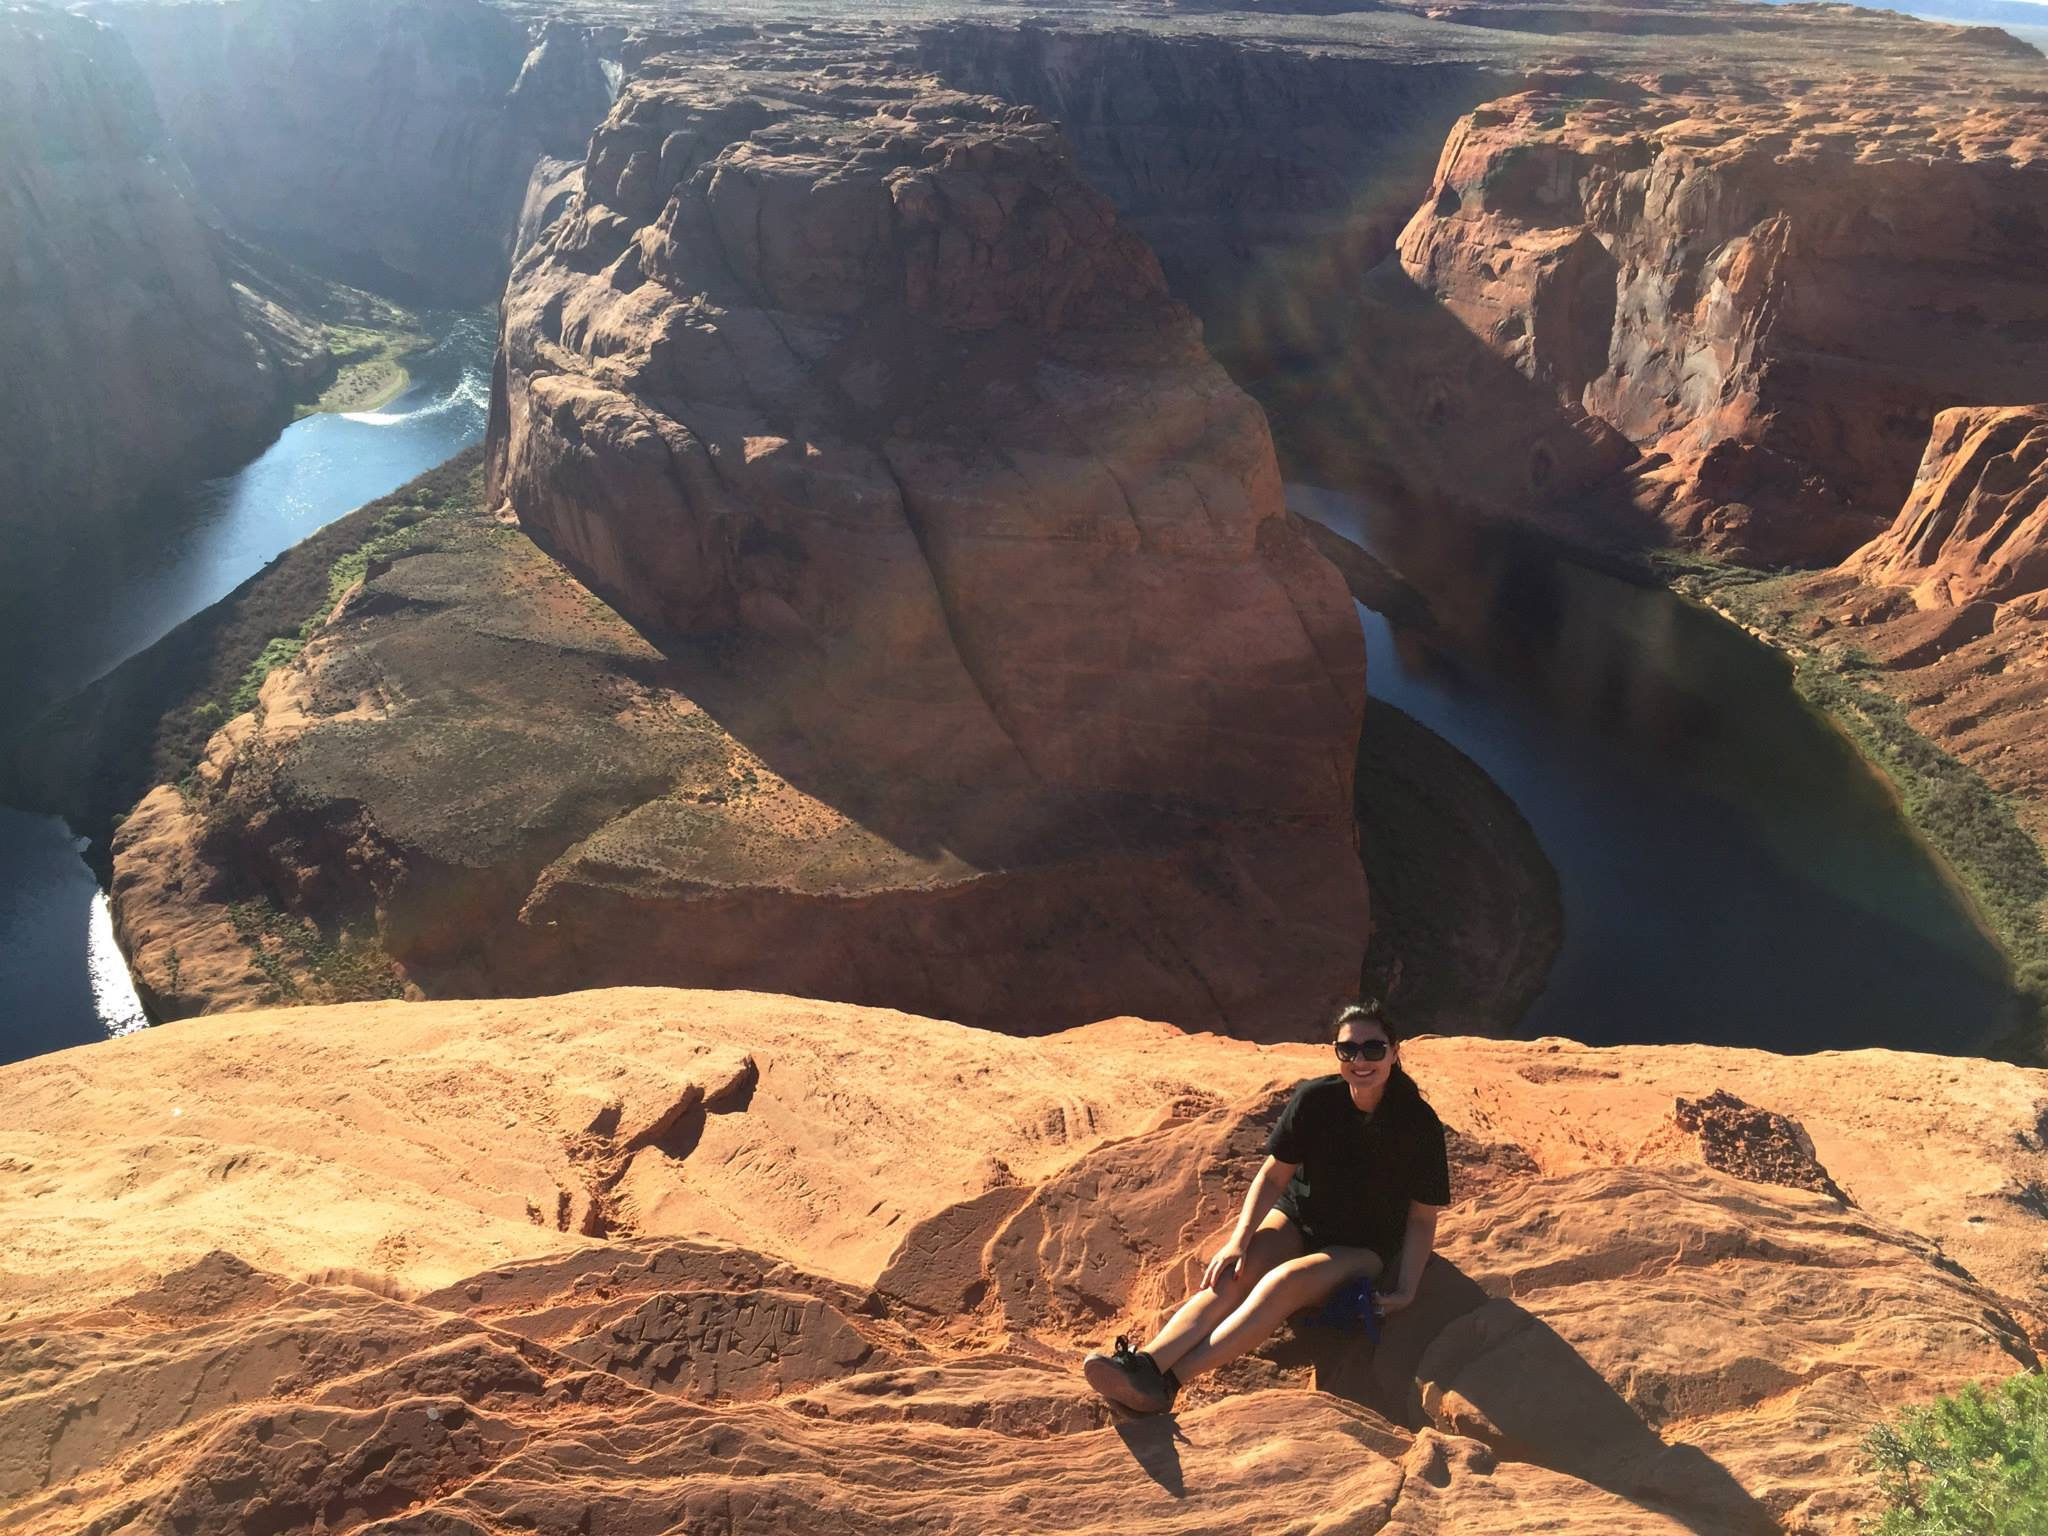 Horseshoe Bend in Arizona should be on any USA southwest road trip itinerary